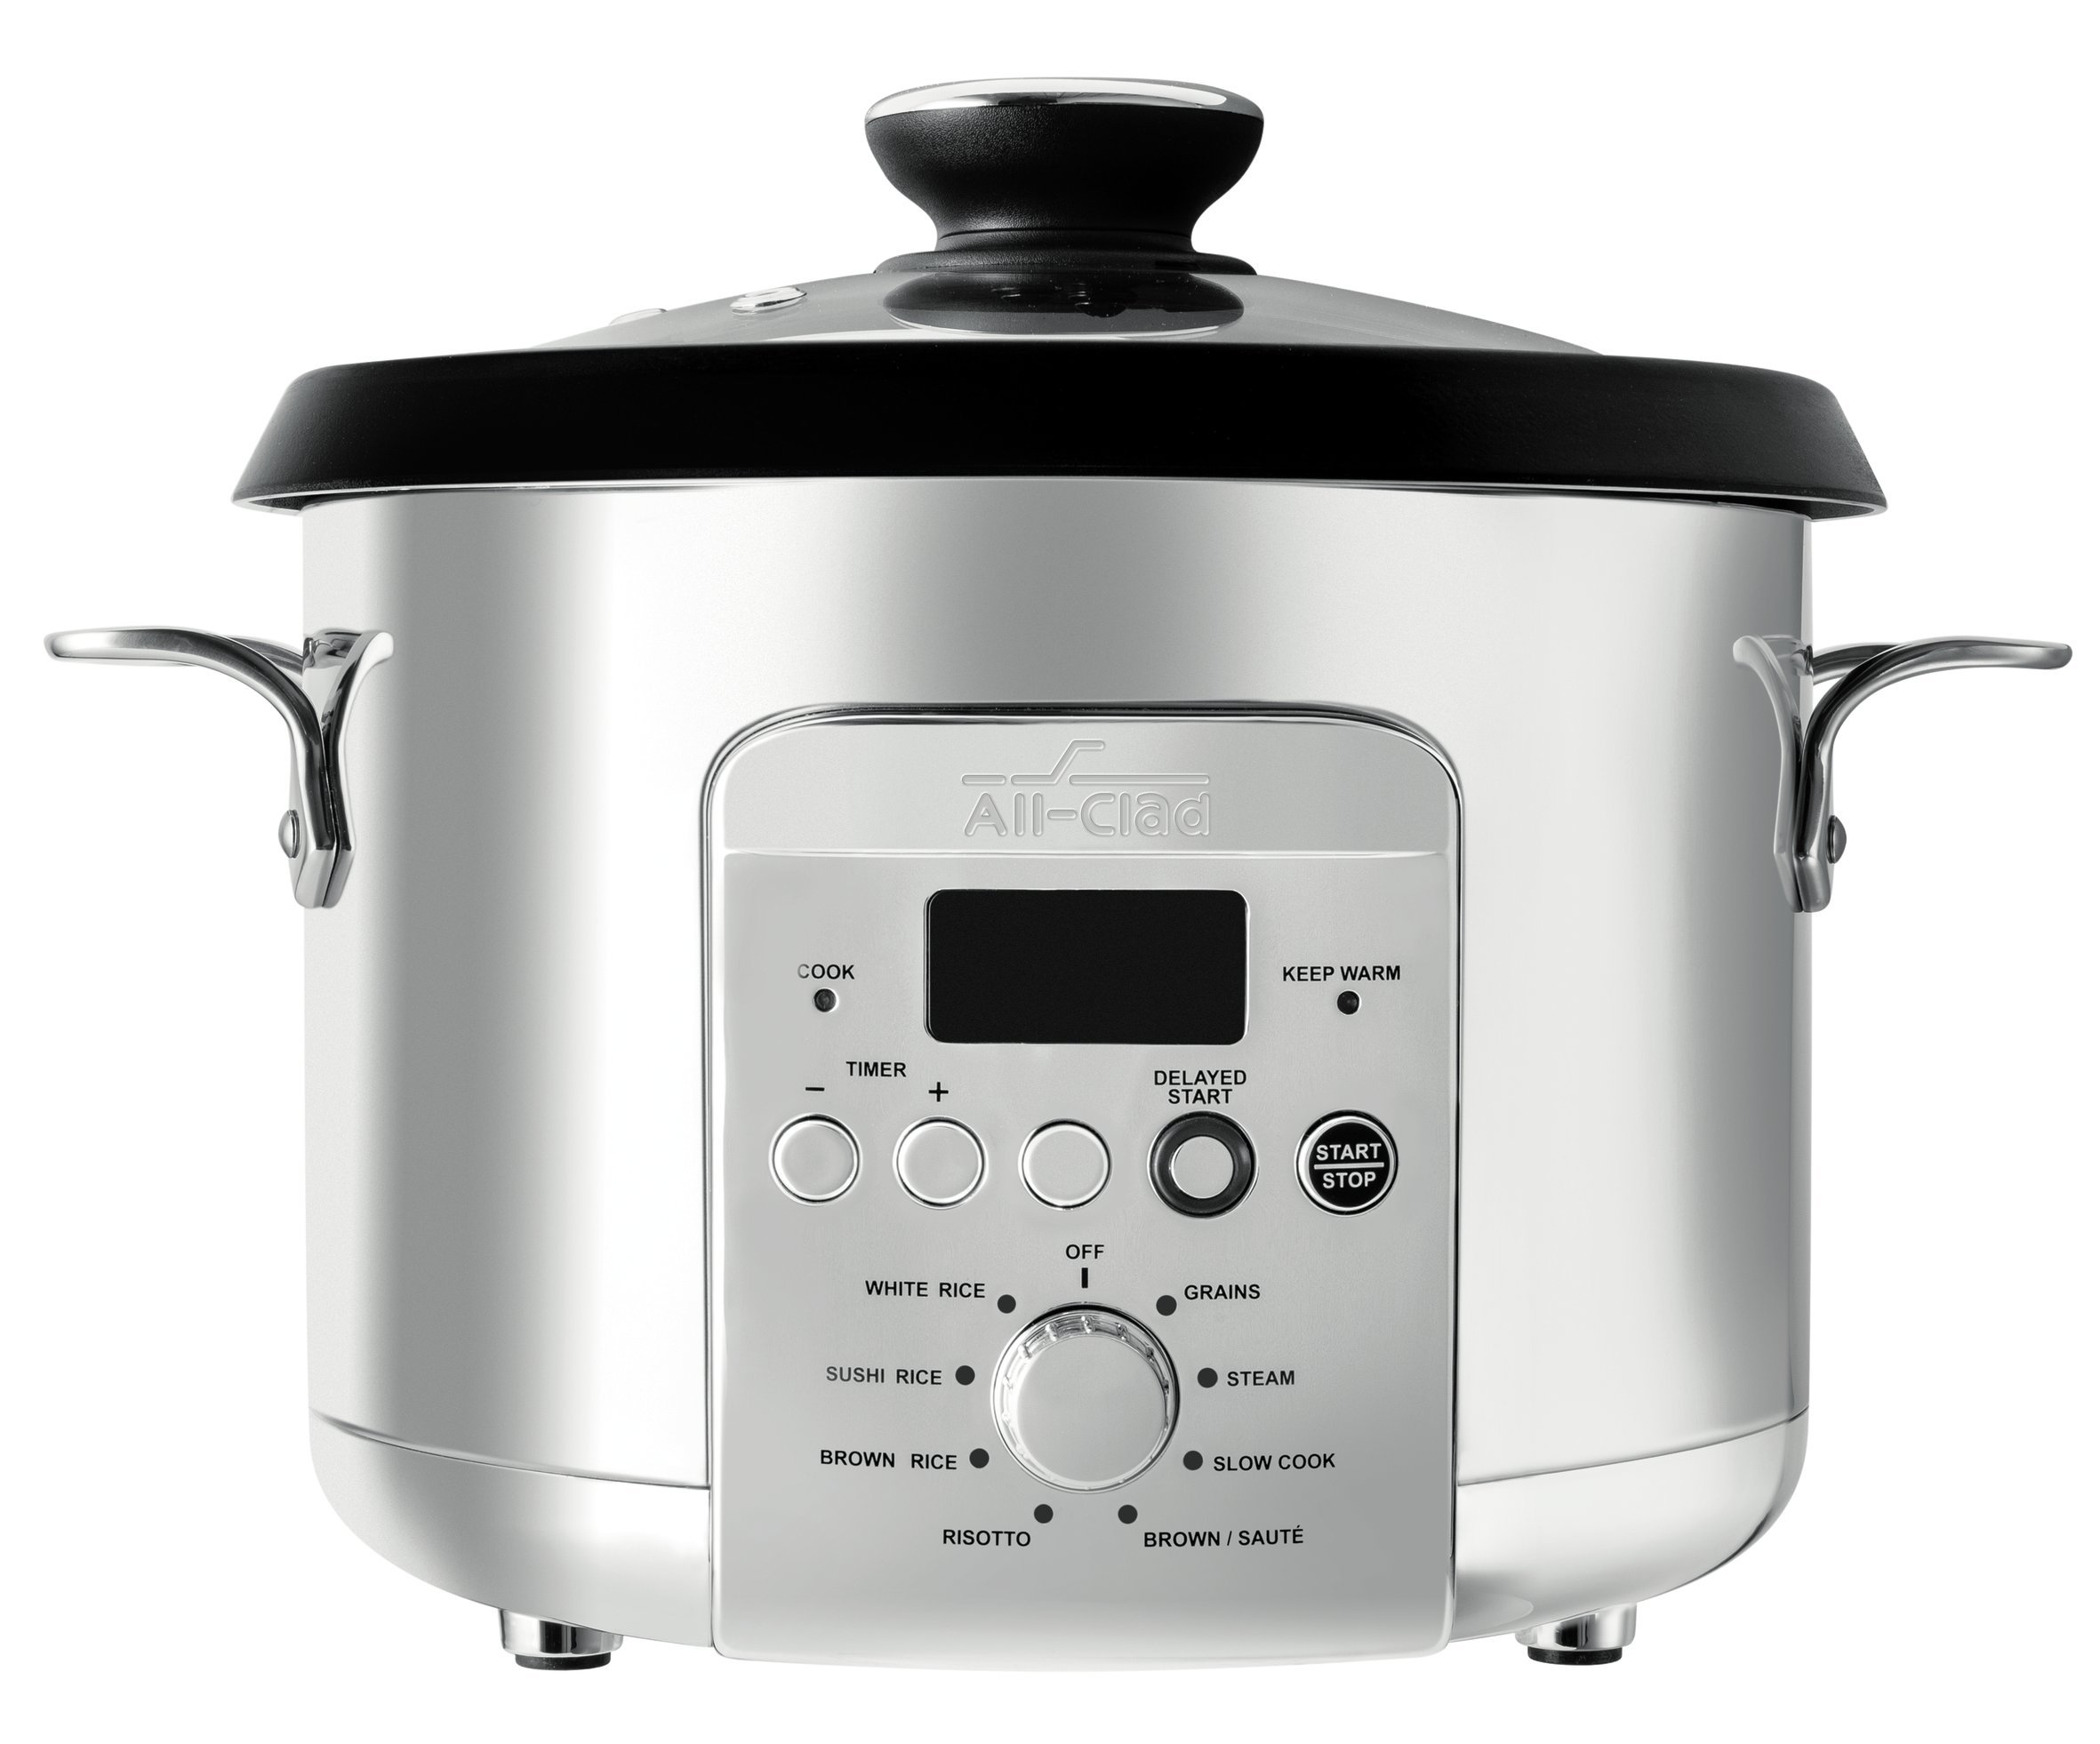 All-Clad NK500 Electric Multi Rice Cooker 4 Qt Grain, Stainless Steel